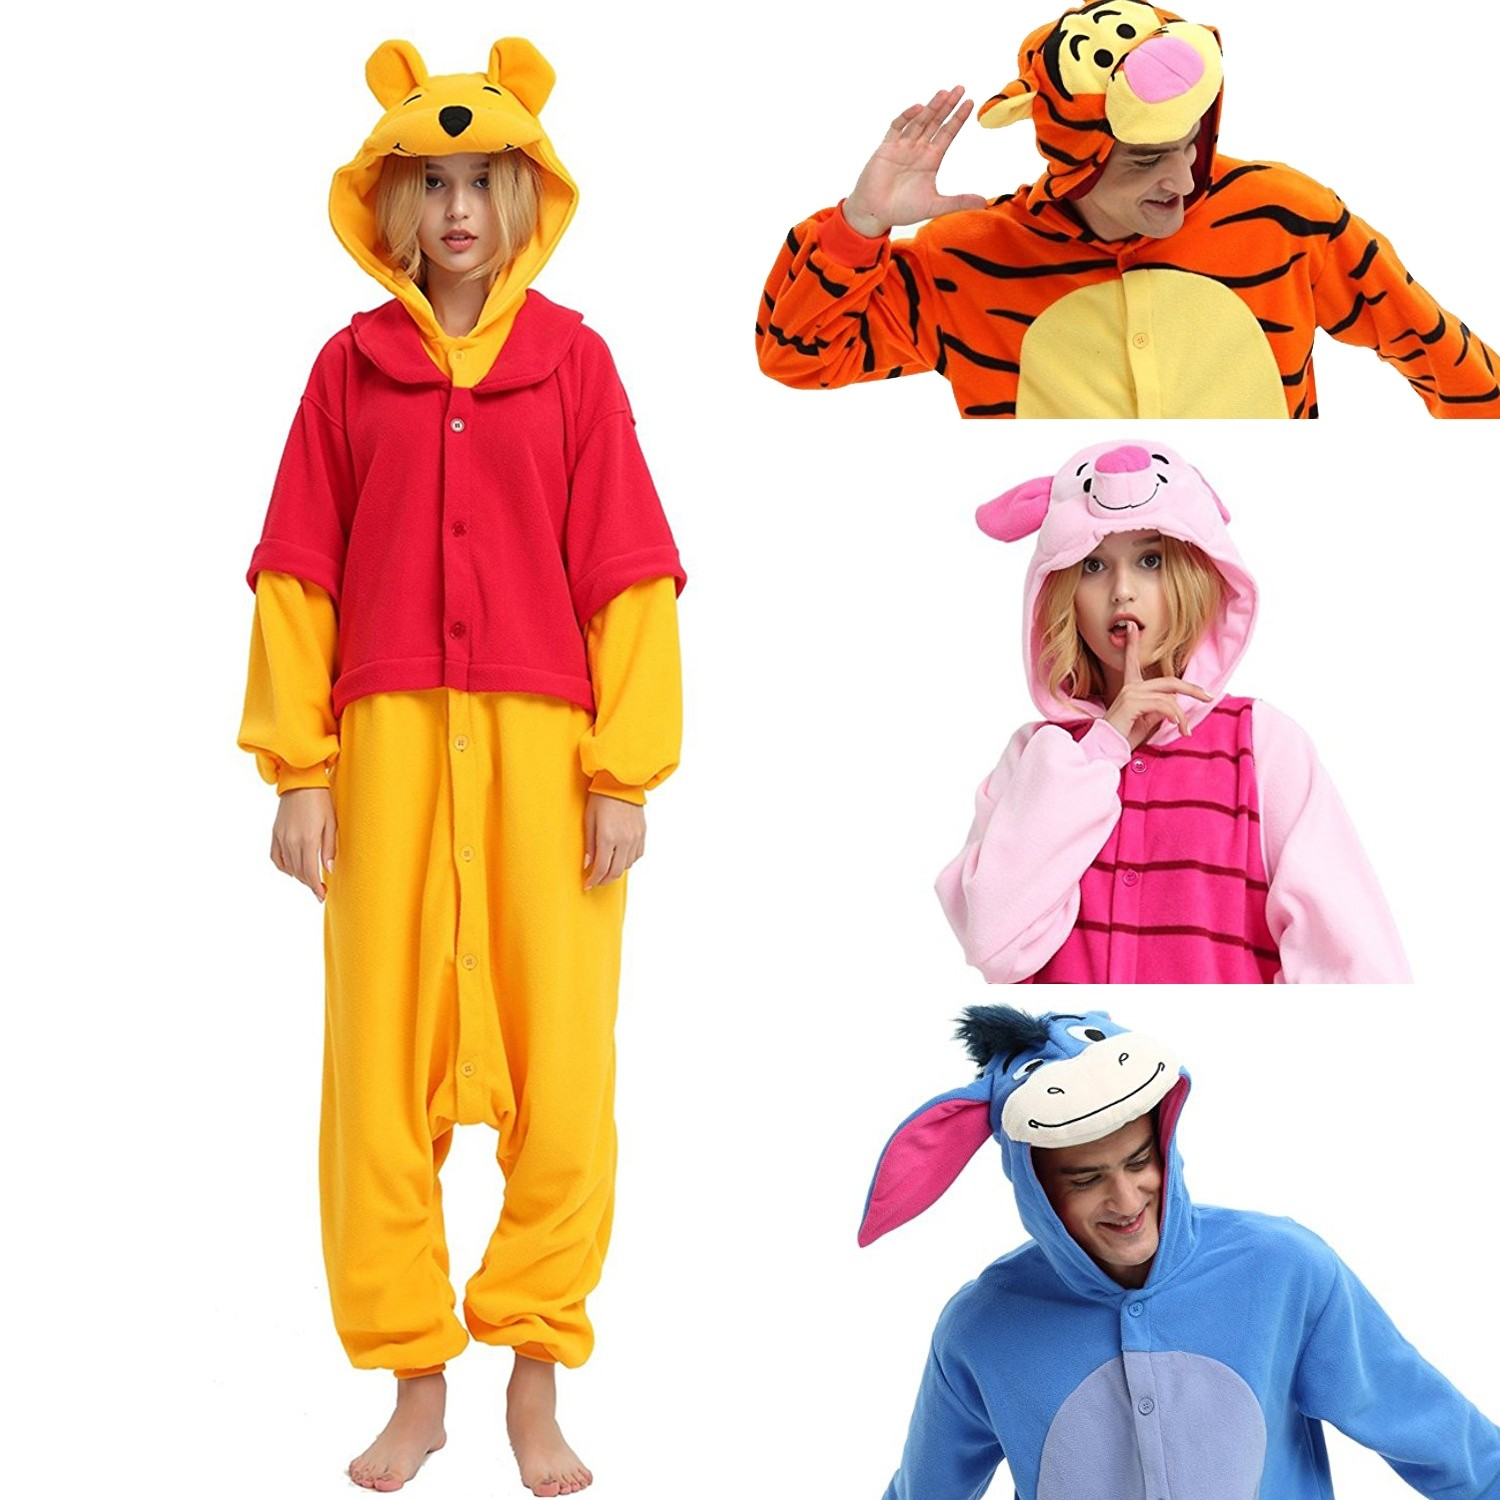 f0df03dc9 Winnie the Pooh   Tigger   Piglet   Eeyore Onesies for Adult Animal ...